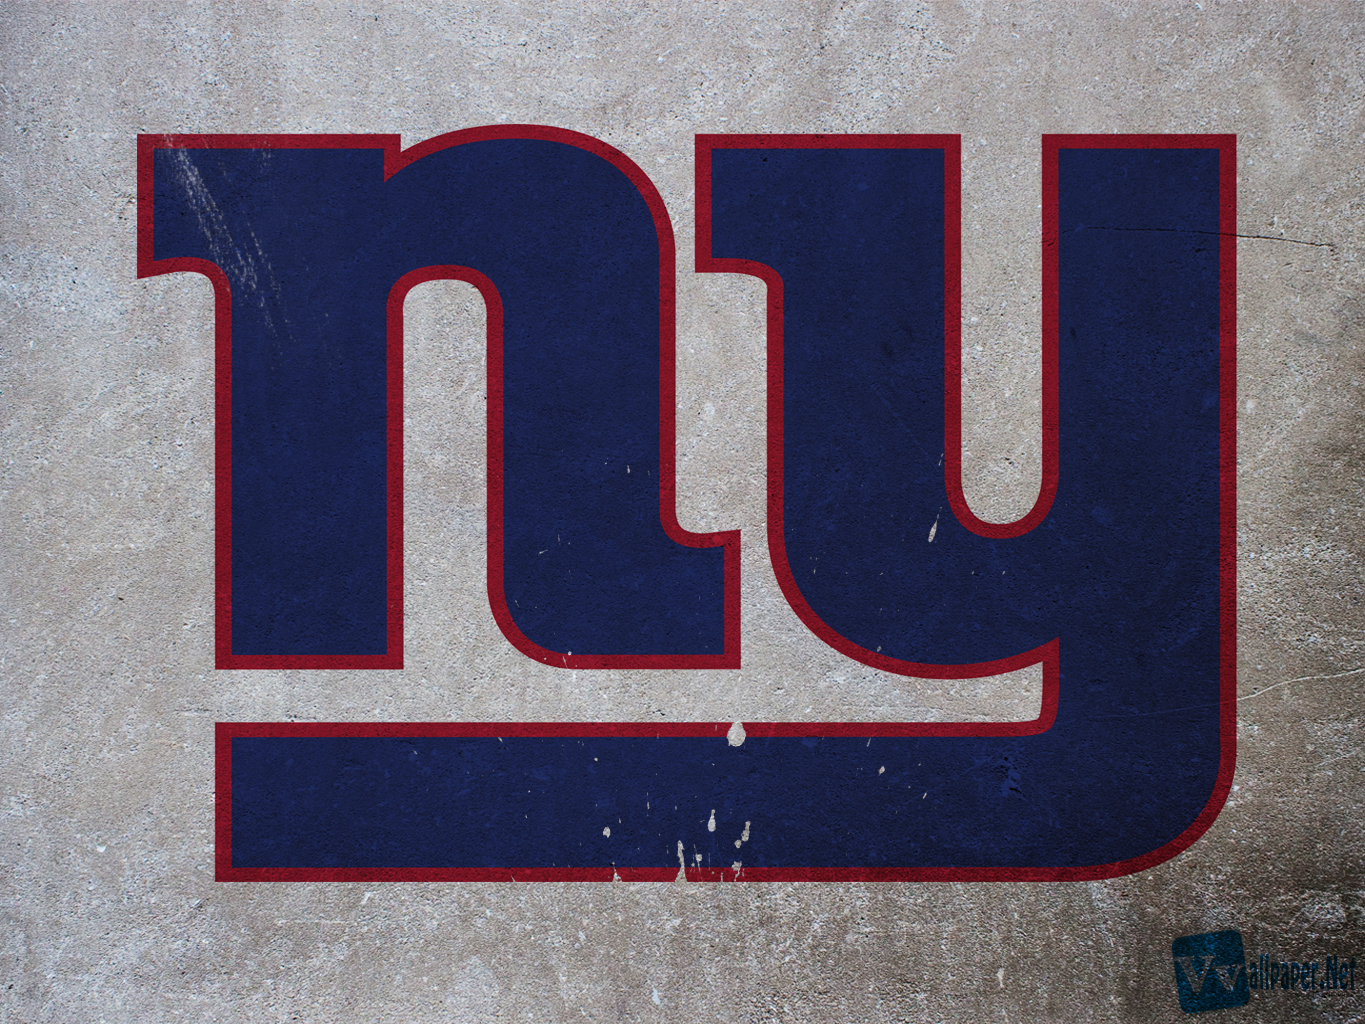 http://3.bp.blogspot.com/-IbRC3-waiKQ/TzFjtbilDCI/AAAAAAAAAjE/N8tIJs_Y0k8/s1600/New_York_Giants_Logo_Design_on_Wall-Vvallpaper.Net.jpg